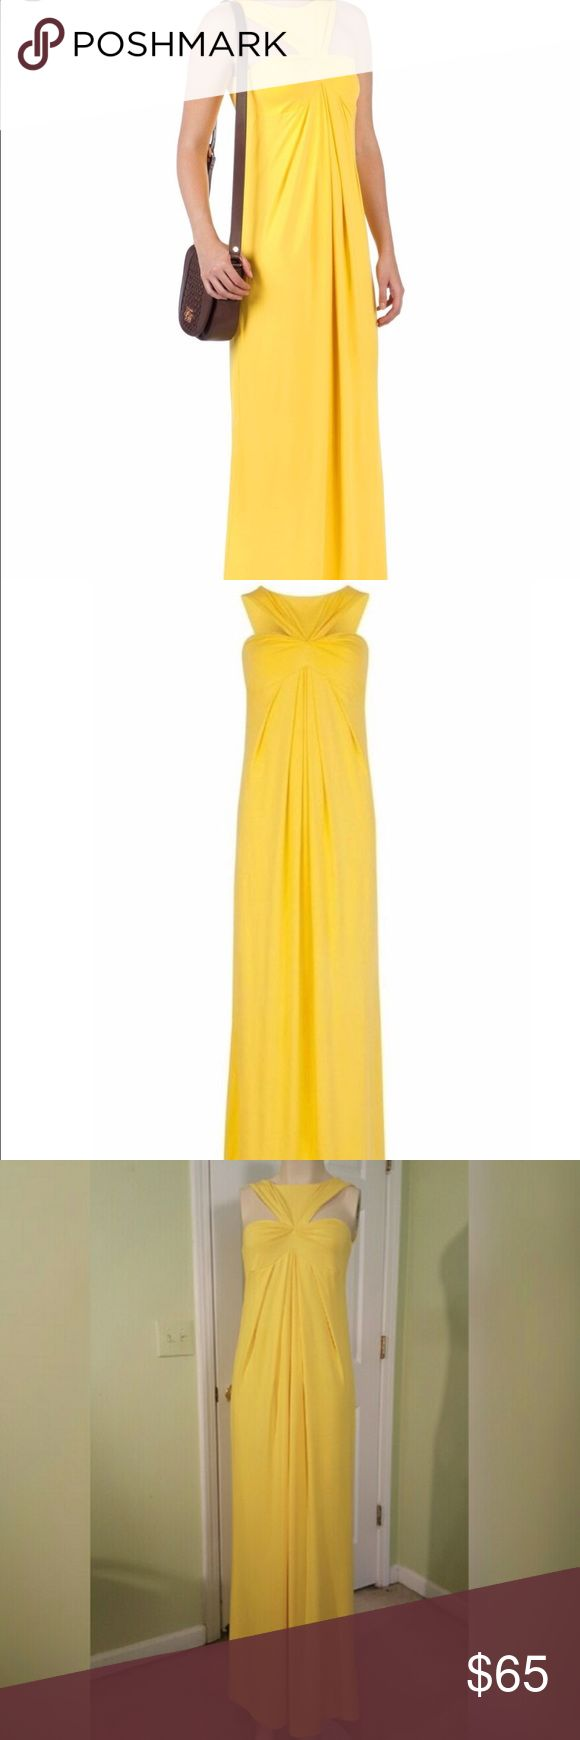 Ted Baker Yellow Oro Maxi Dress Tag cut as it was purchased from sample sale. In perfect condition. Beautiful spring or summer dress and super flowy and comfortable. UK size 1 = US 4 Ted Baker Dresses Maxi